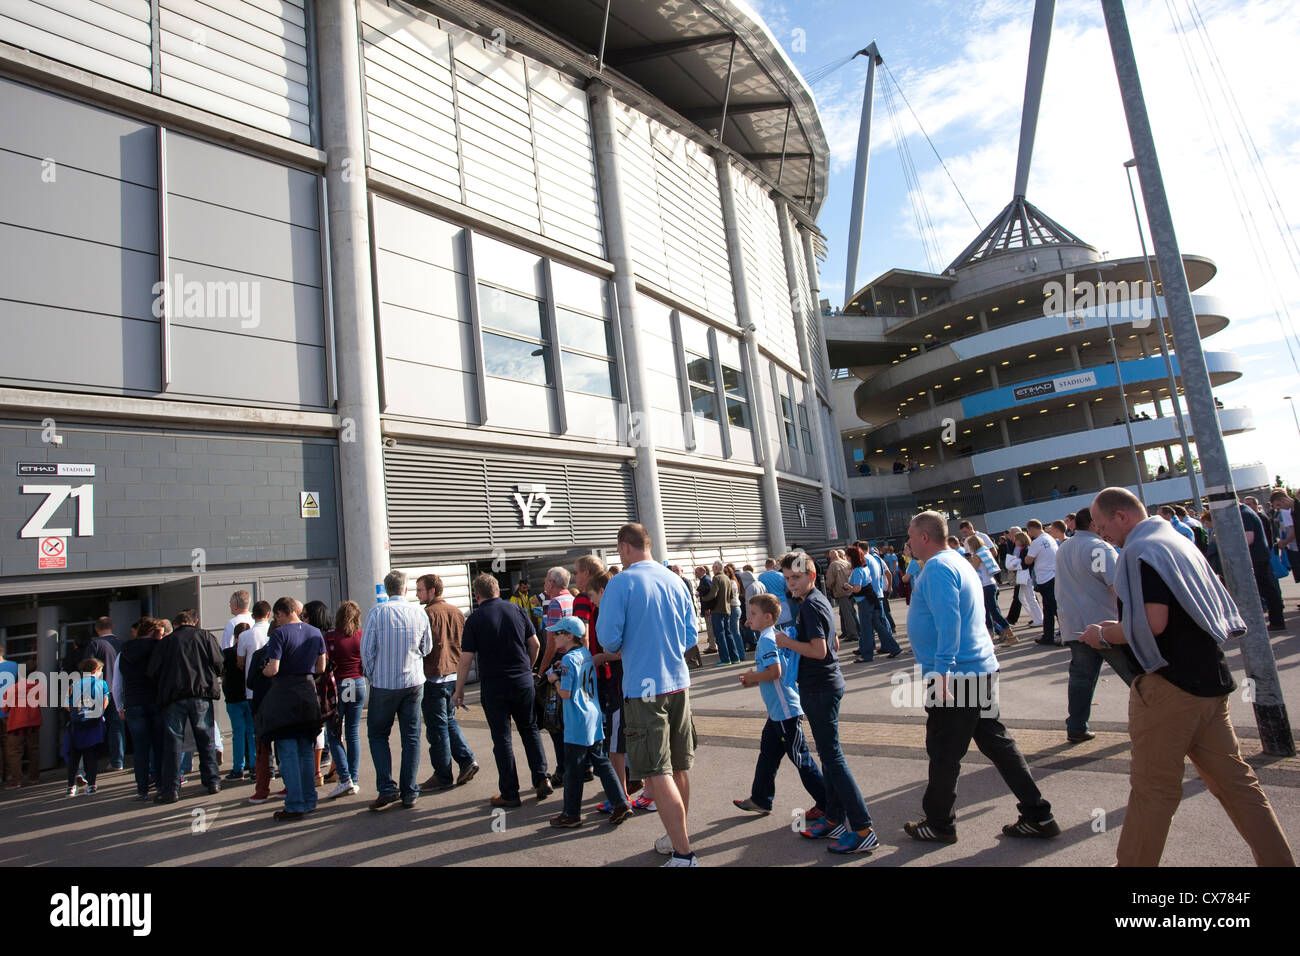 Fans queue outside the Etihad Stadium, Manchester City Football Club, Manchester, England, United Kingdom - Stock Image